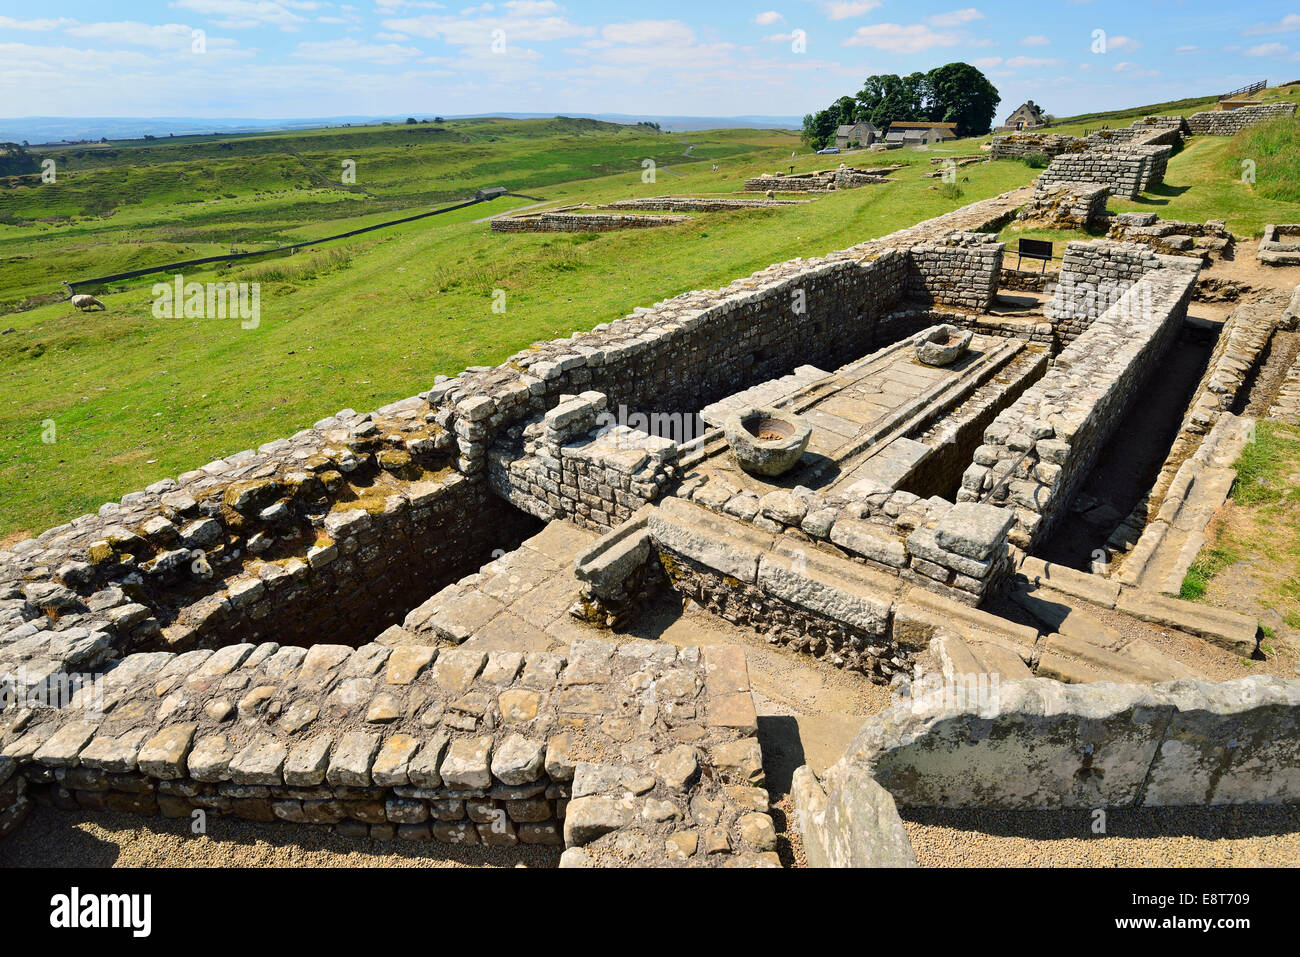 Ruins of the Roman fort with the associated campsite, Housesteads Roman Fort, Haydon Bridge, Hexham, Northumberland, - Stock Image